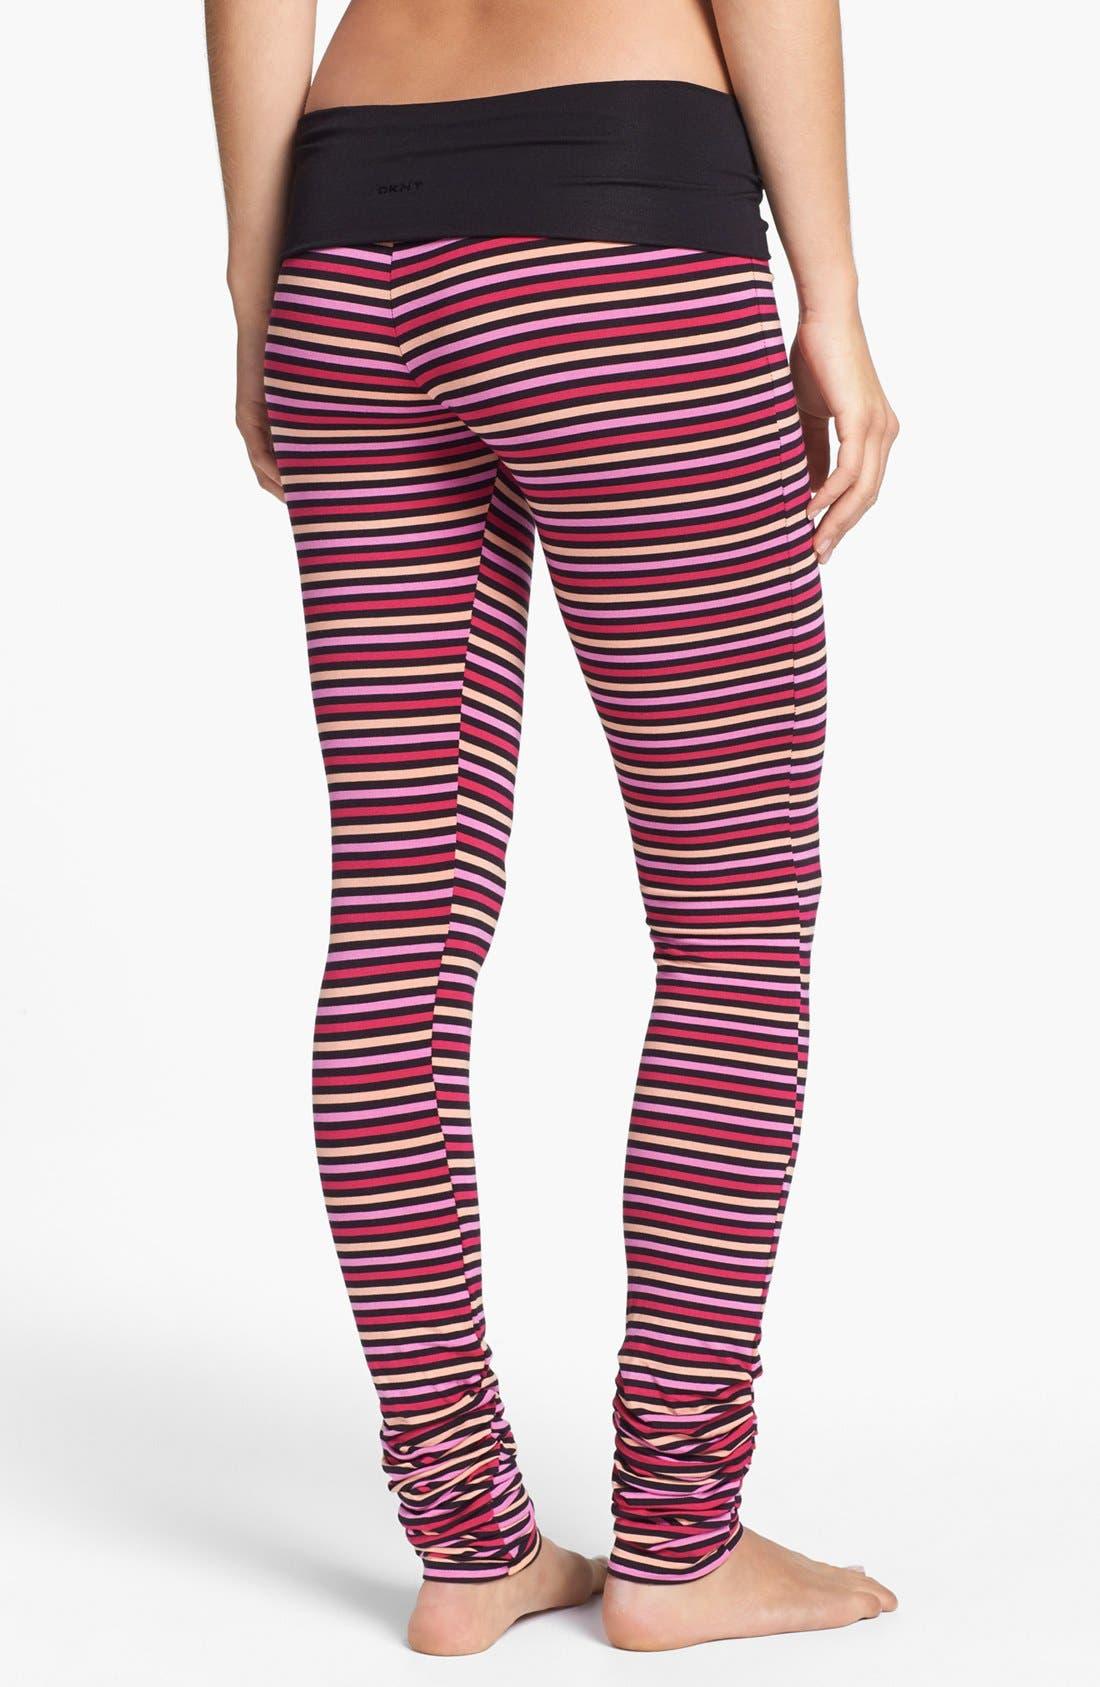 Alternate Image 2  - DKNY 'Soho Mews Yoga Skinnies' Leggings